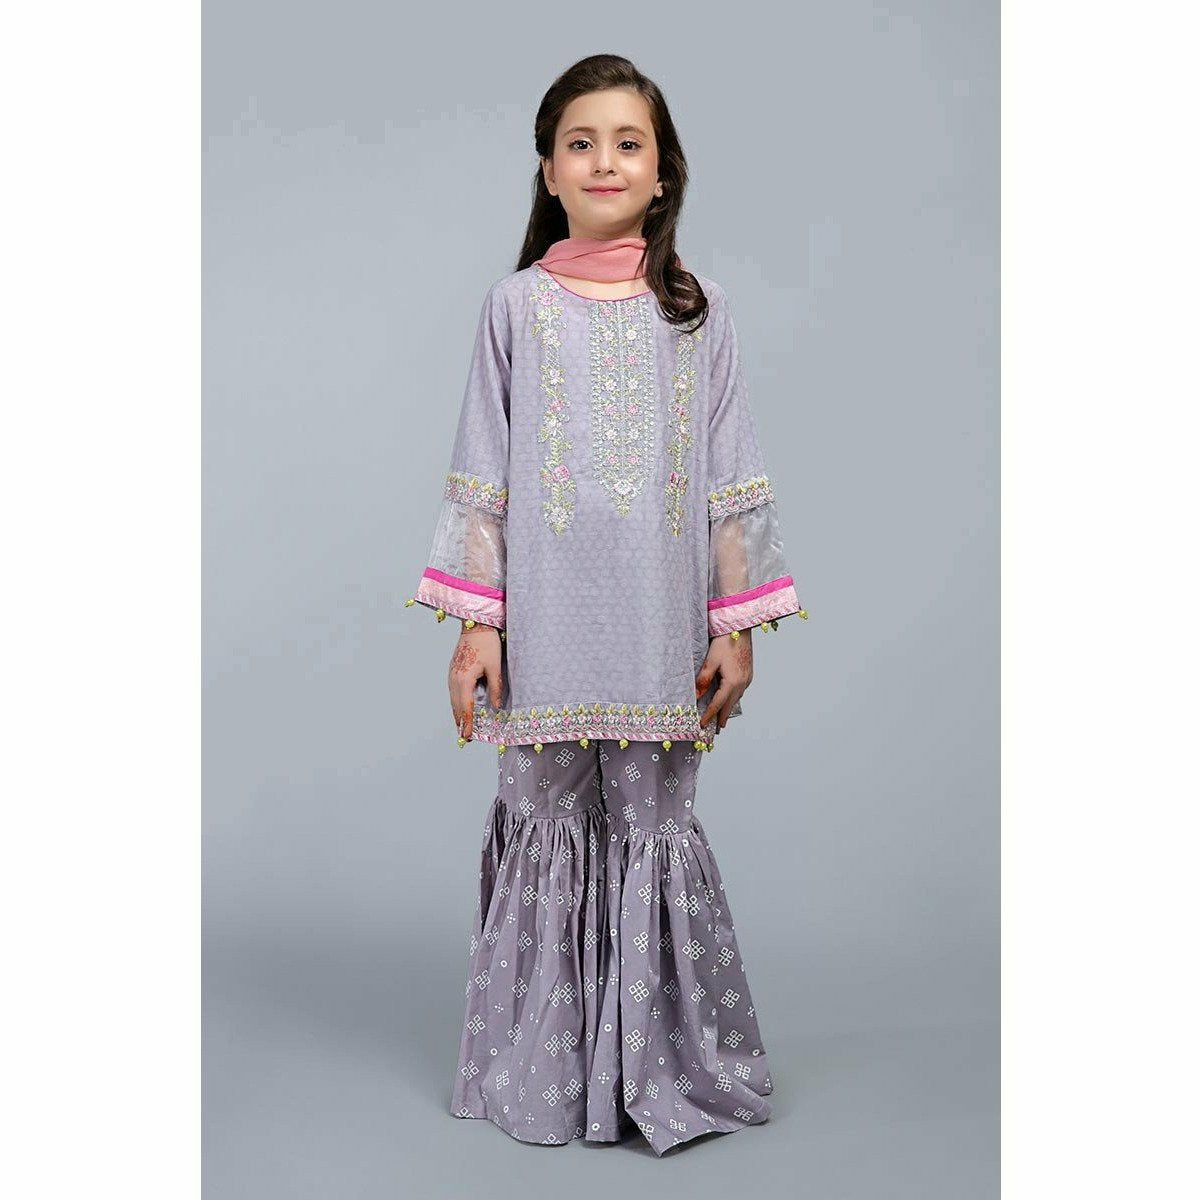 Suit Purple MKD-SS20-07 - House of Faiza